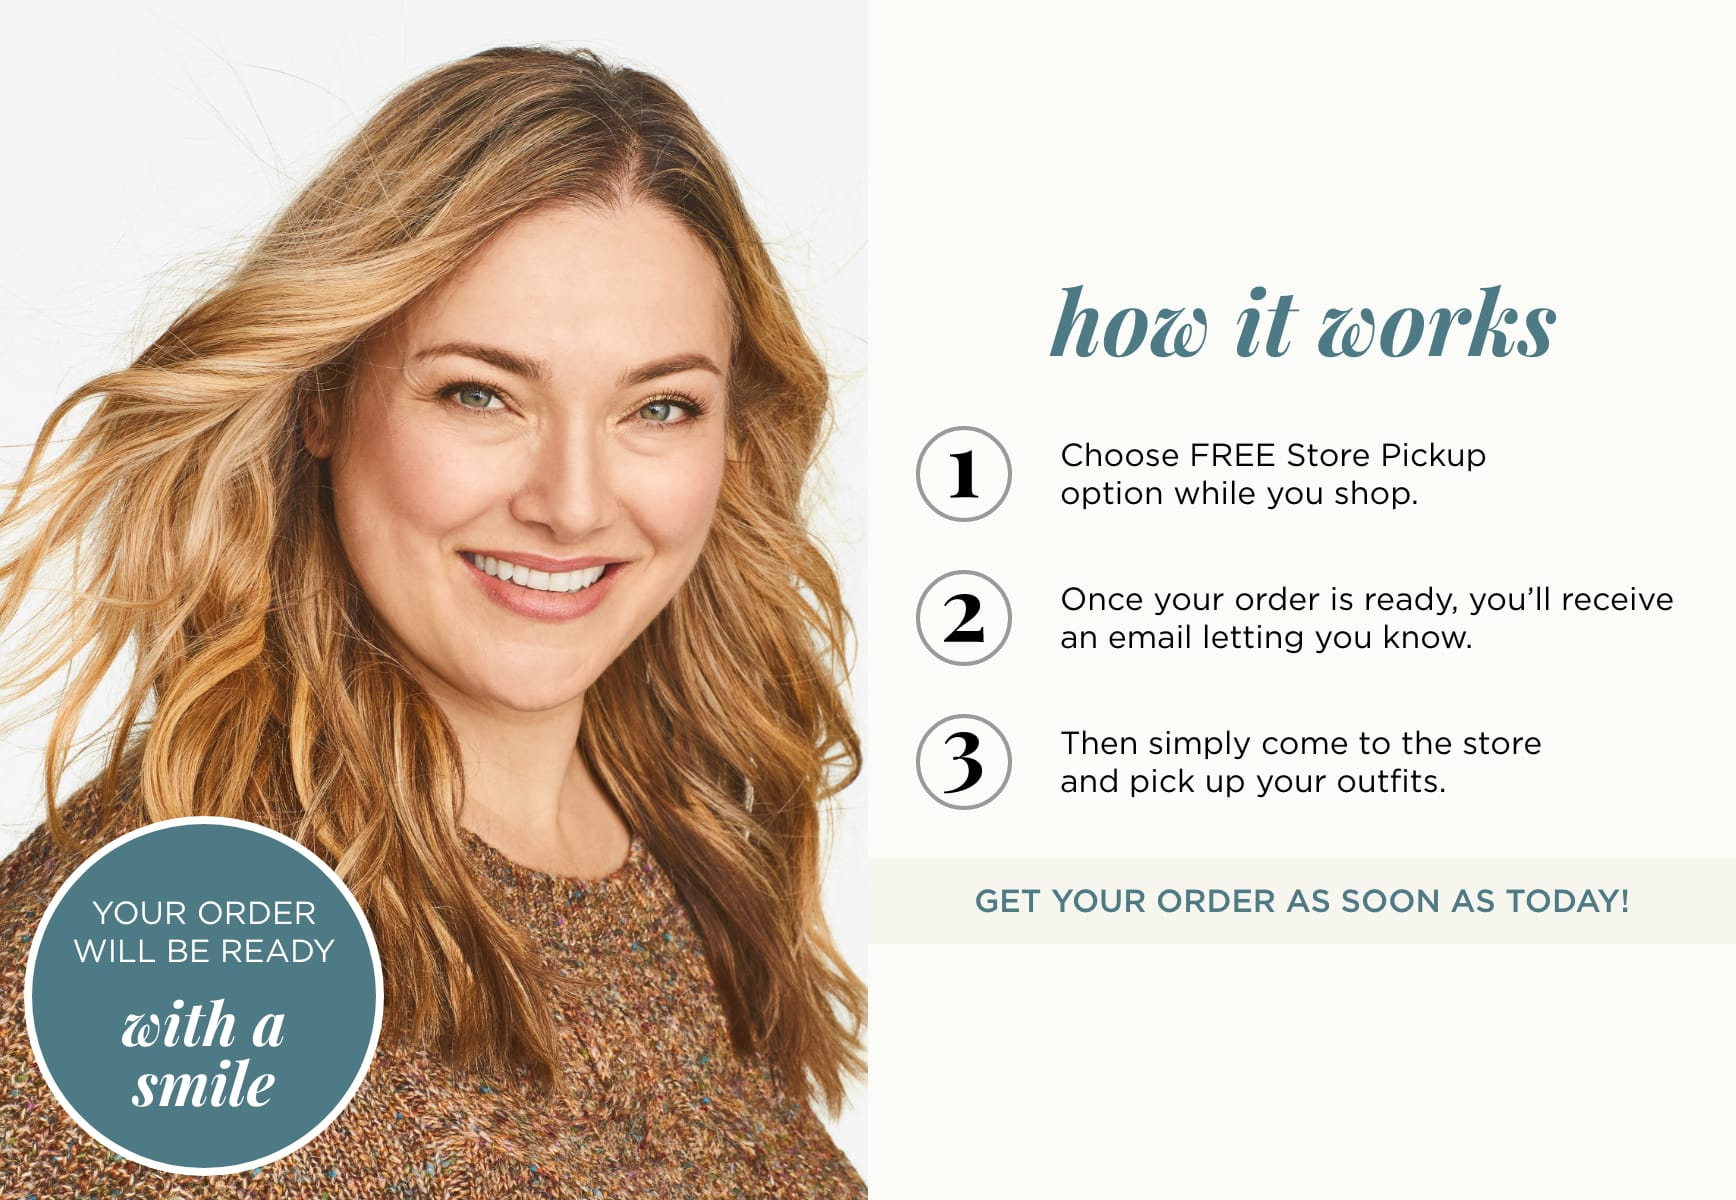 How it Works: 1. Choose FREE Store Pickup. 2. Once your order is ready, you'll receive an email letting you know. 3. Then simply come to the store and pick up your outfits. Get your order as soon as today!